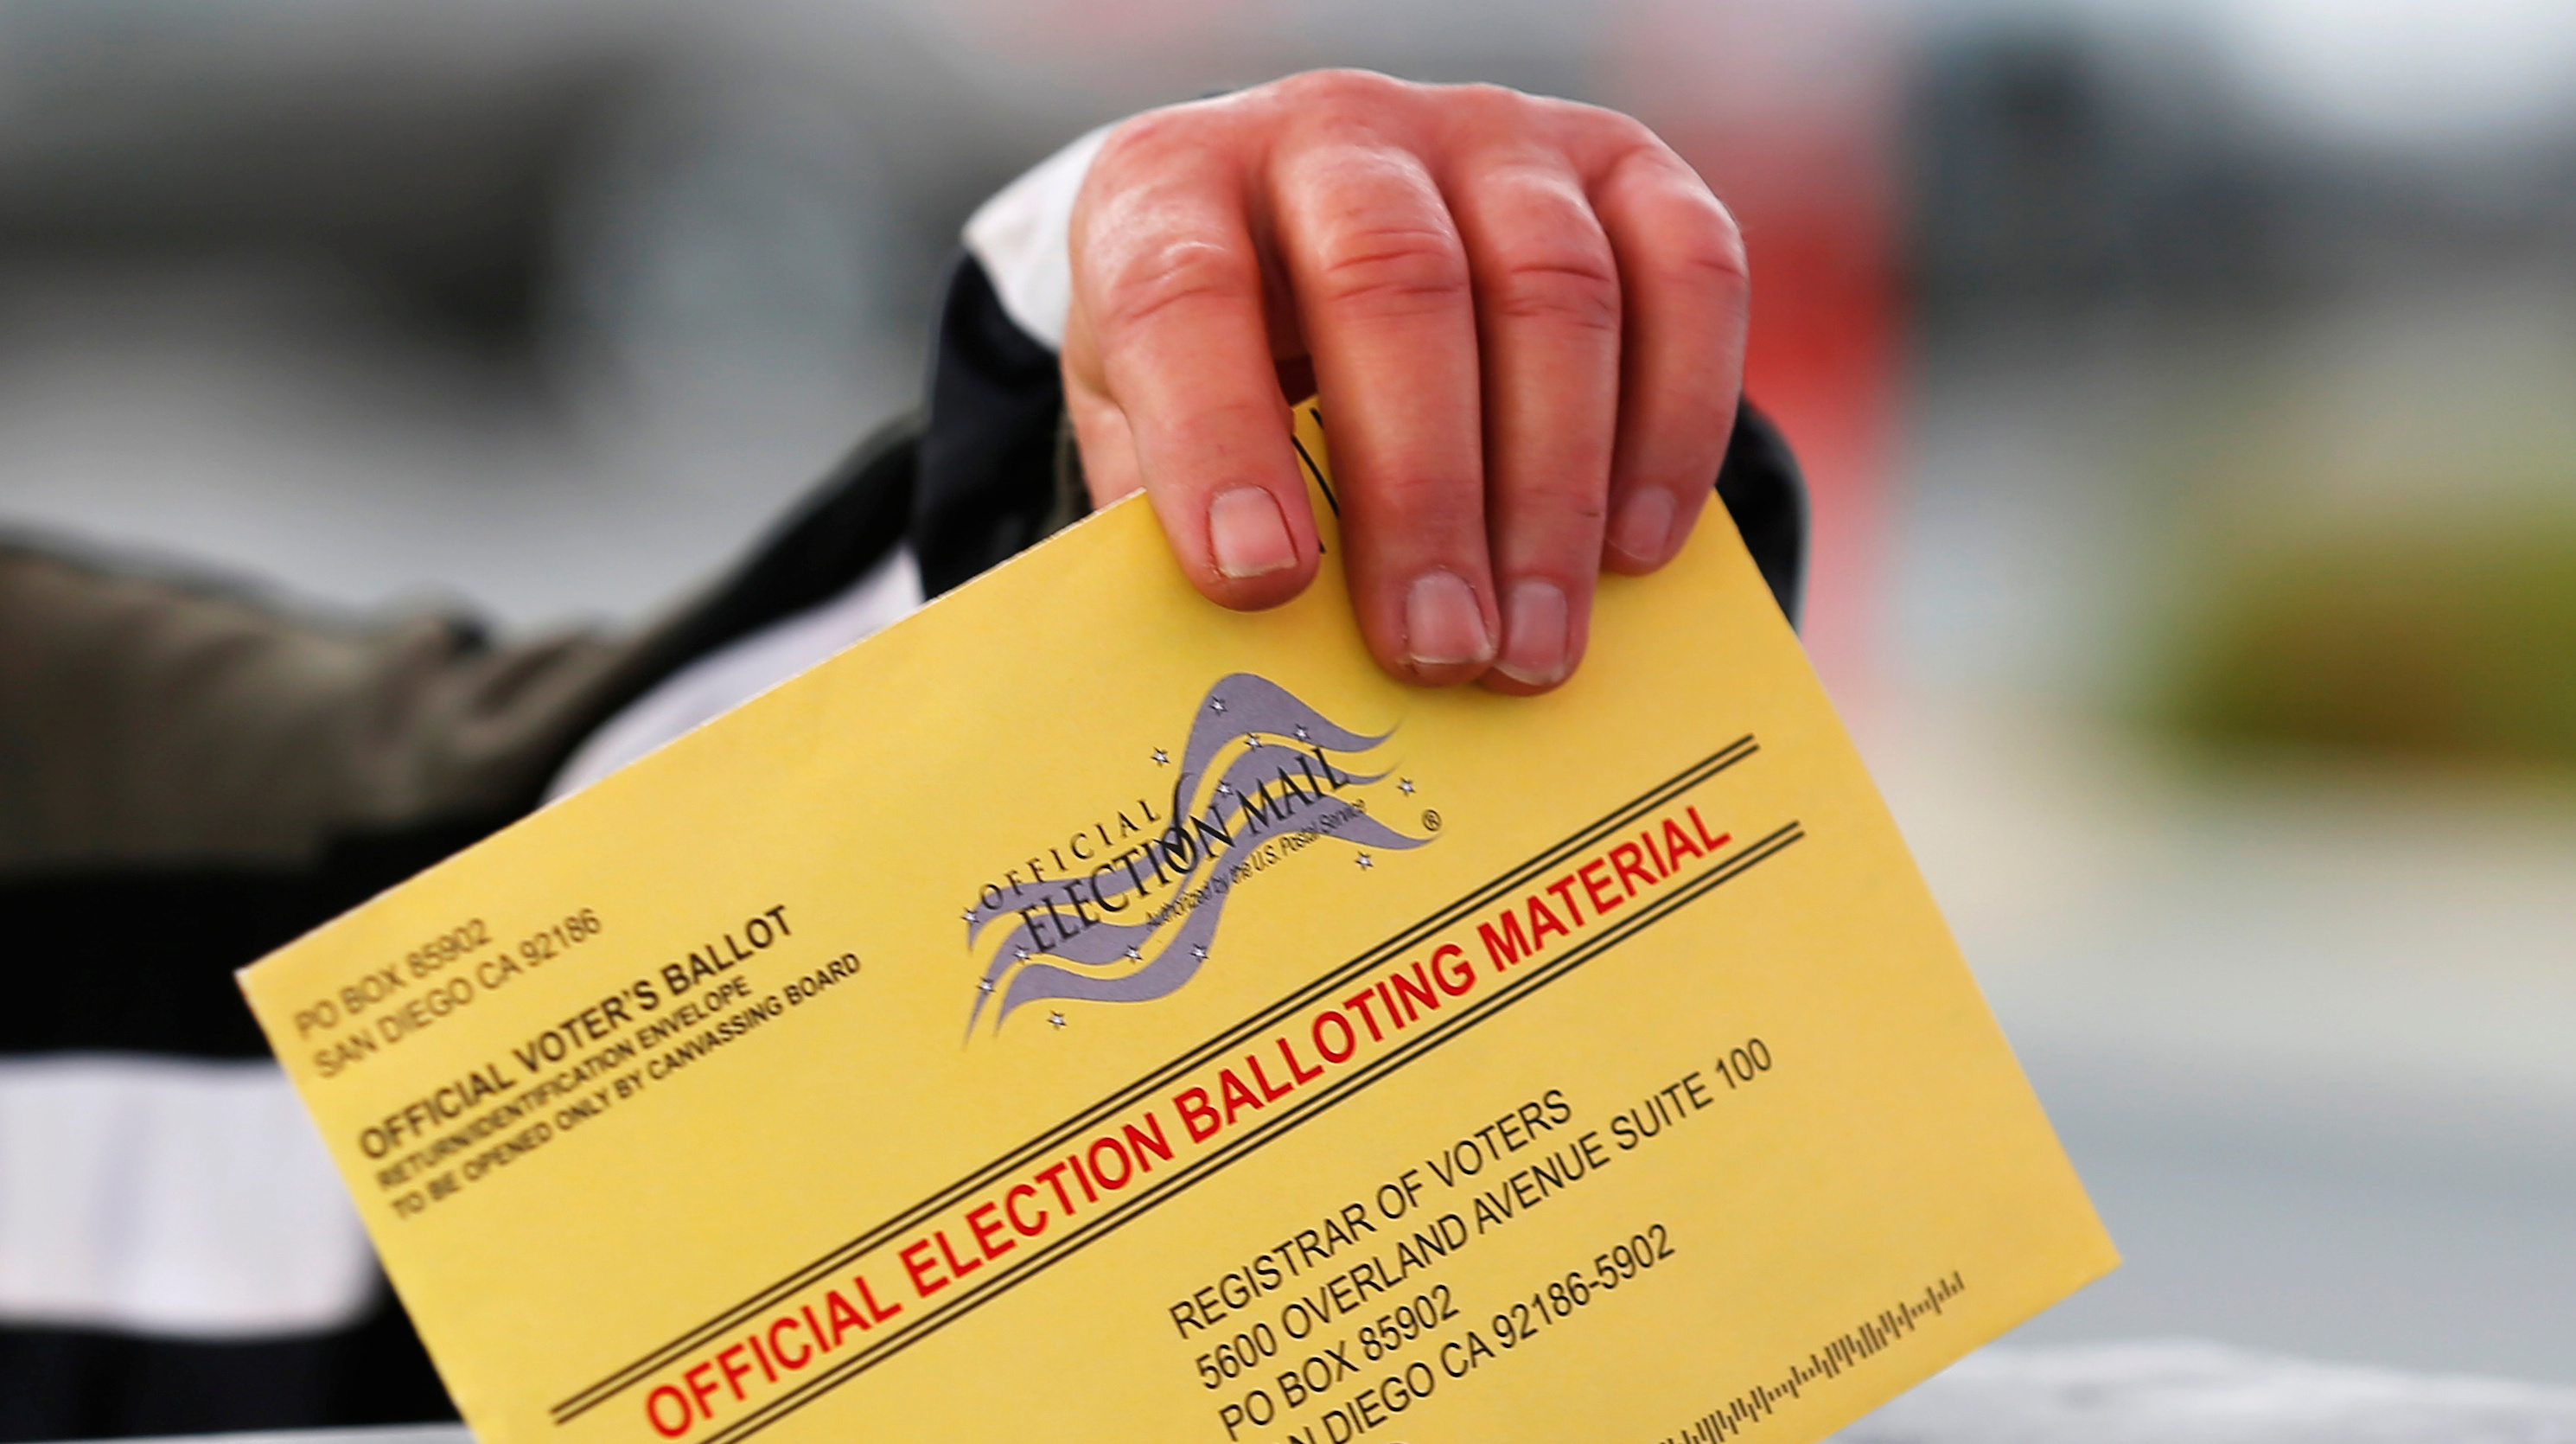 A poll worker places a mail in ballot into a voting box as voters drop off their ballot in the U.S. presidential primary election in San Diego, California